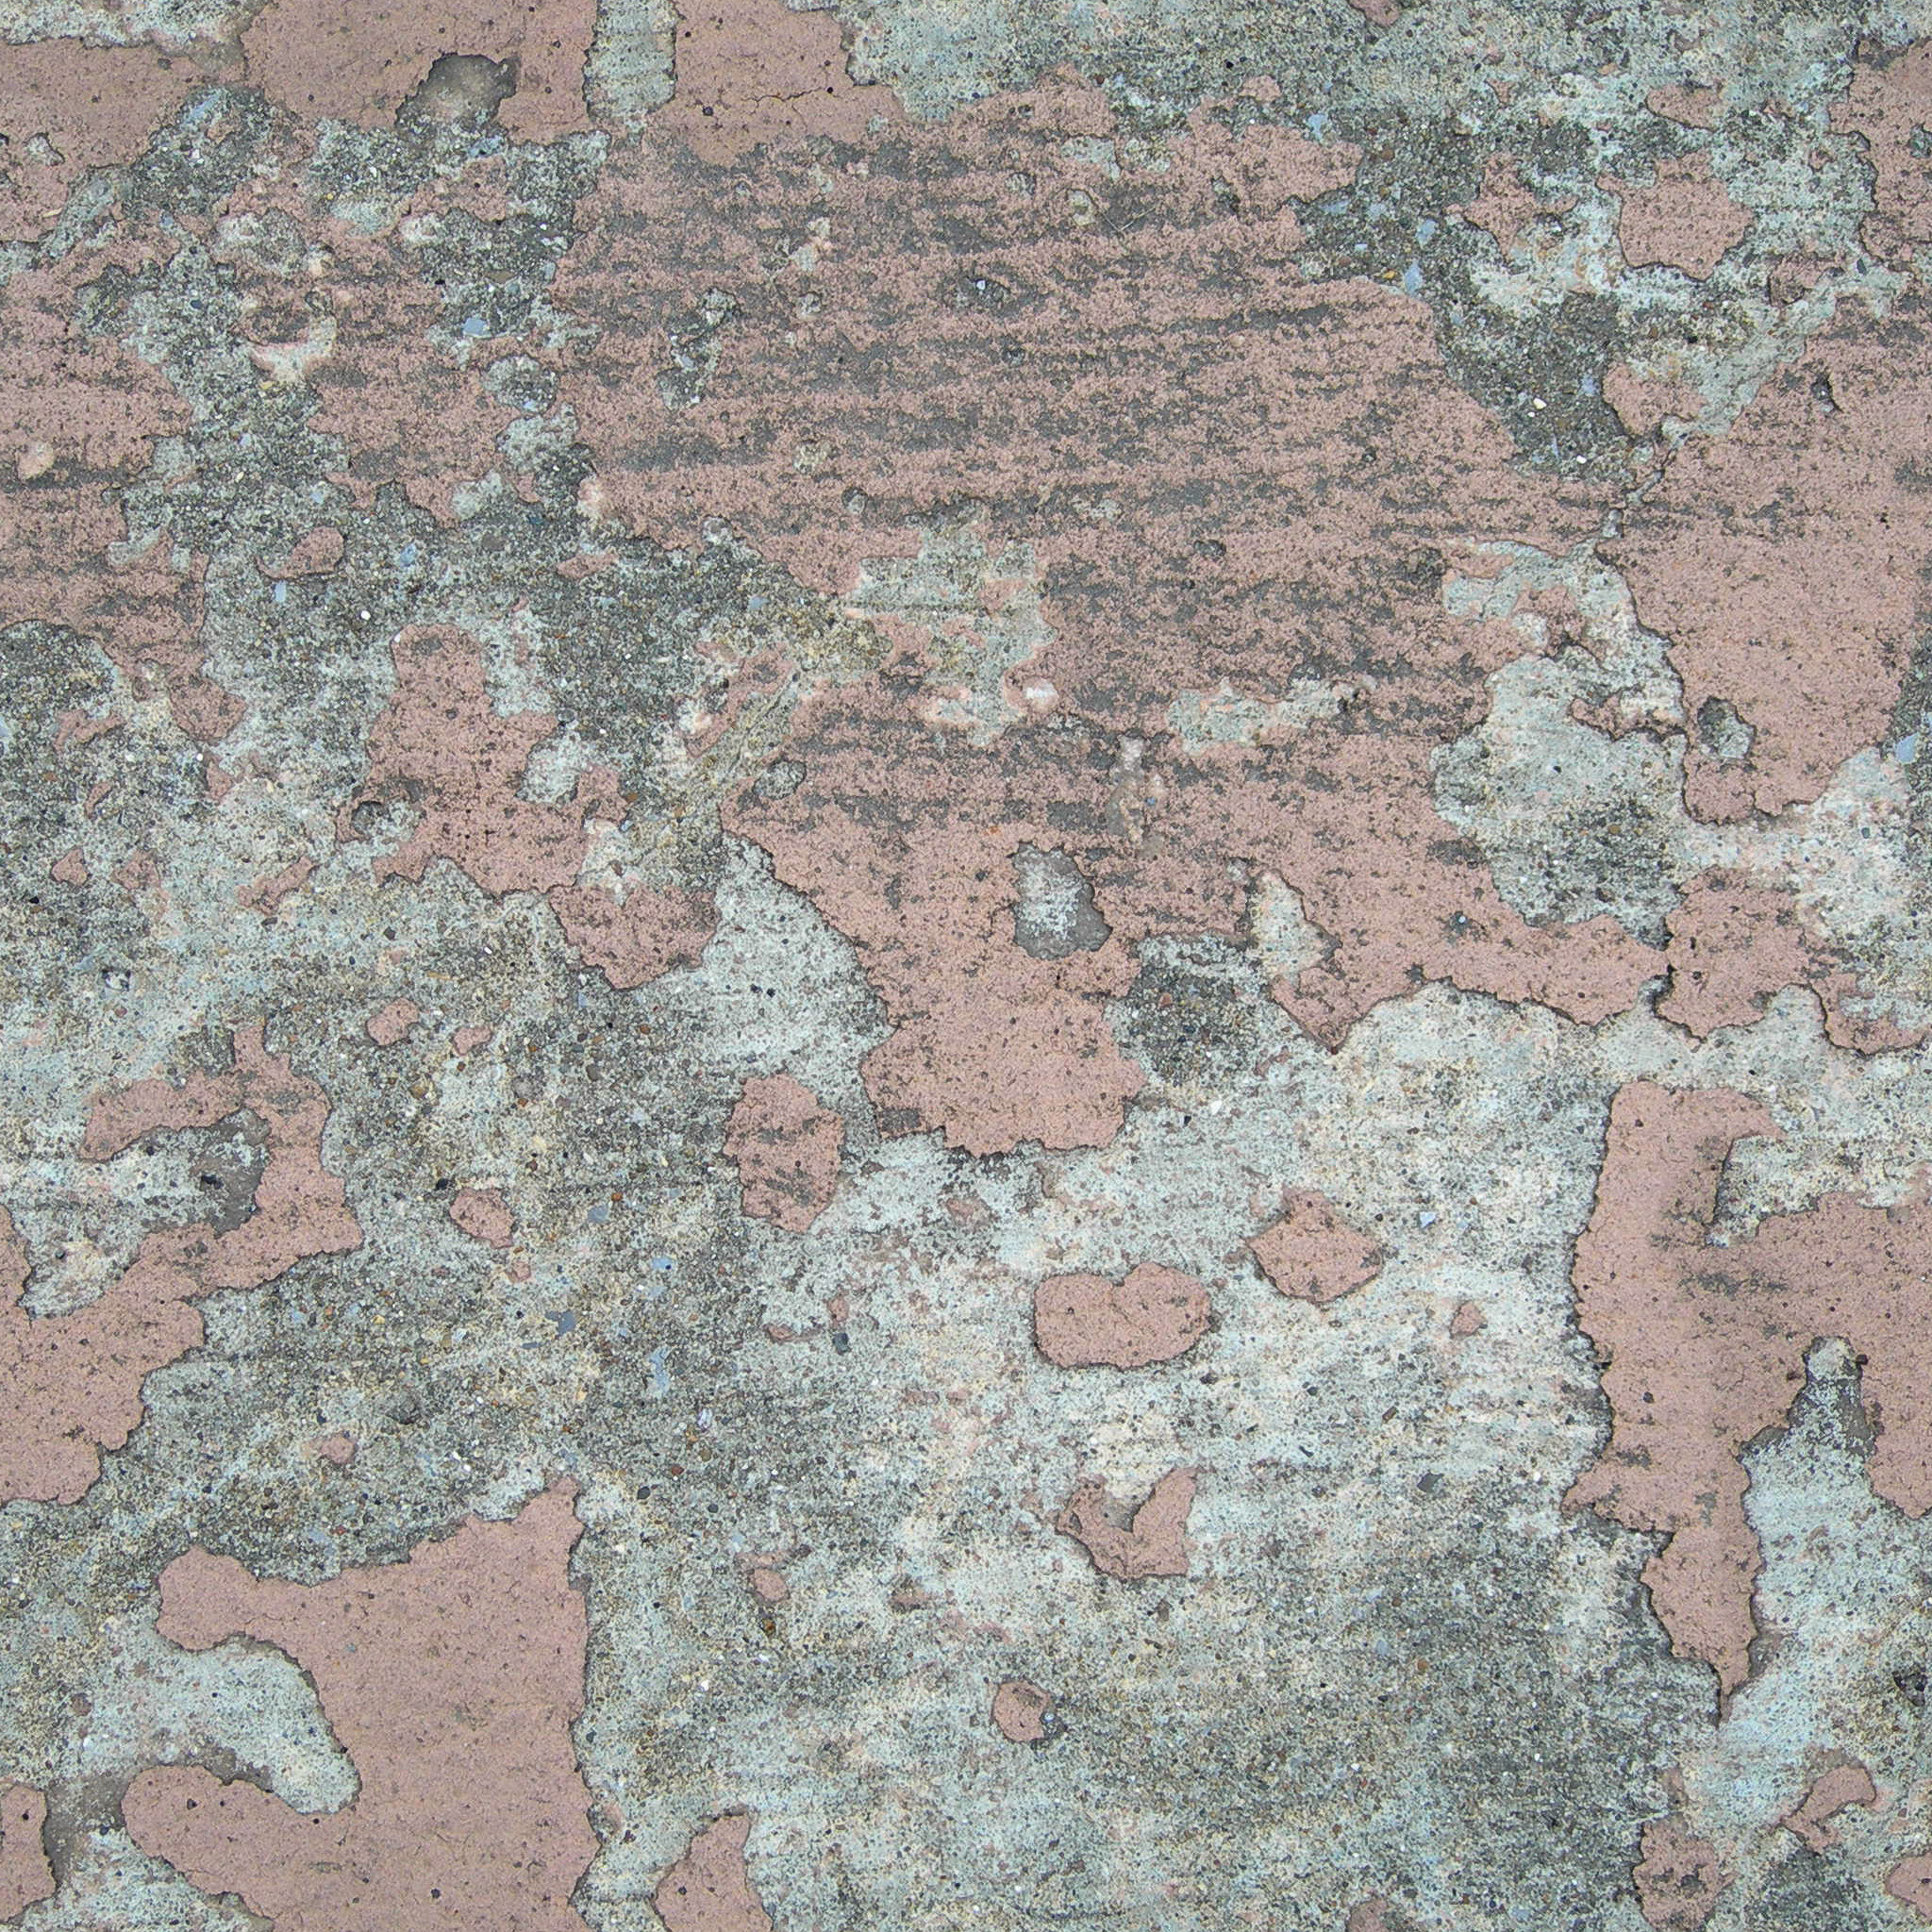 Free photo Grunge Painted Concrete Stone Peeled Peeling Free